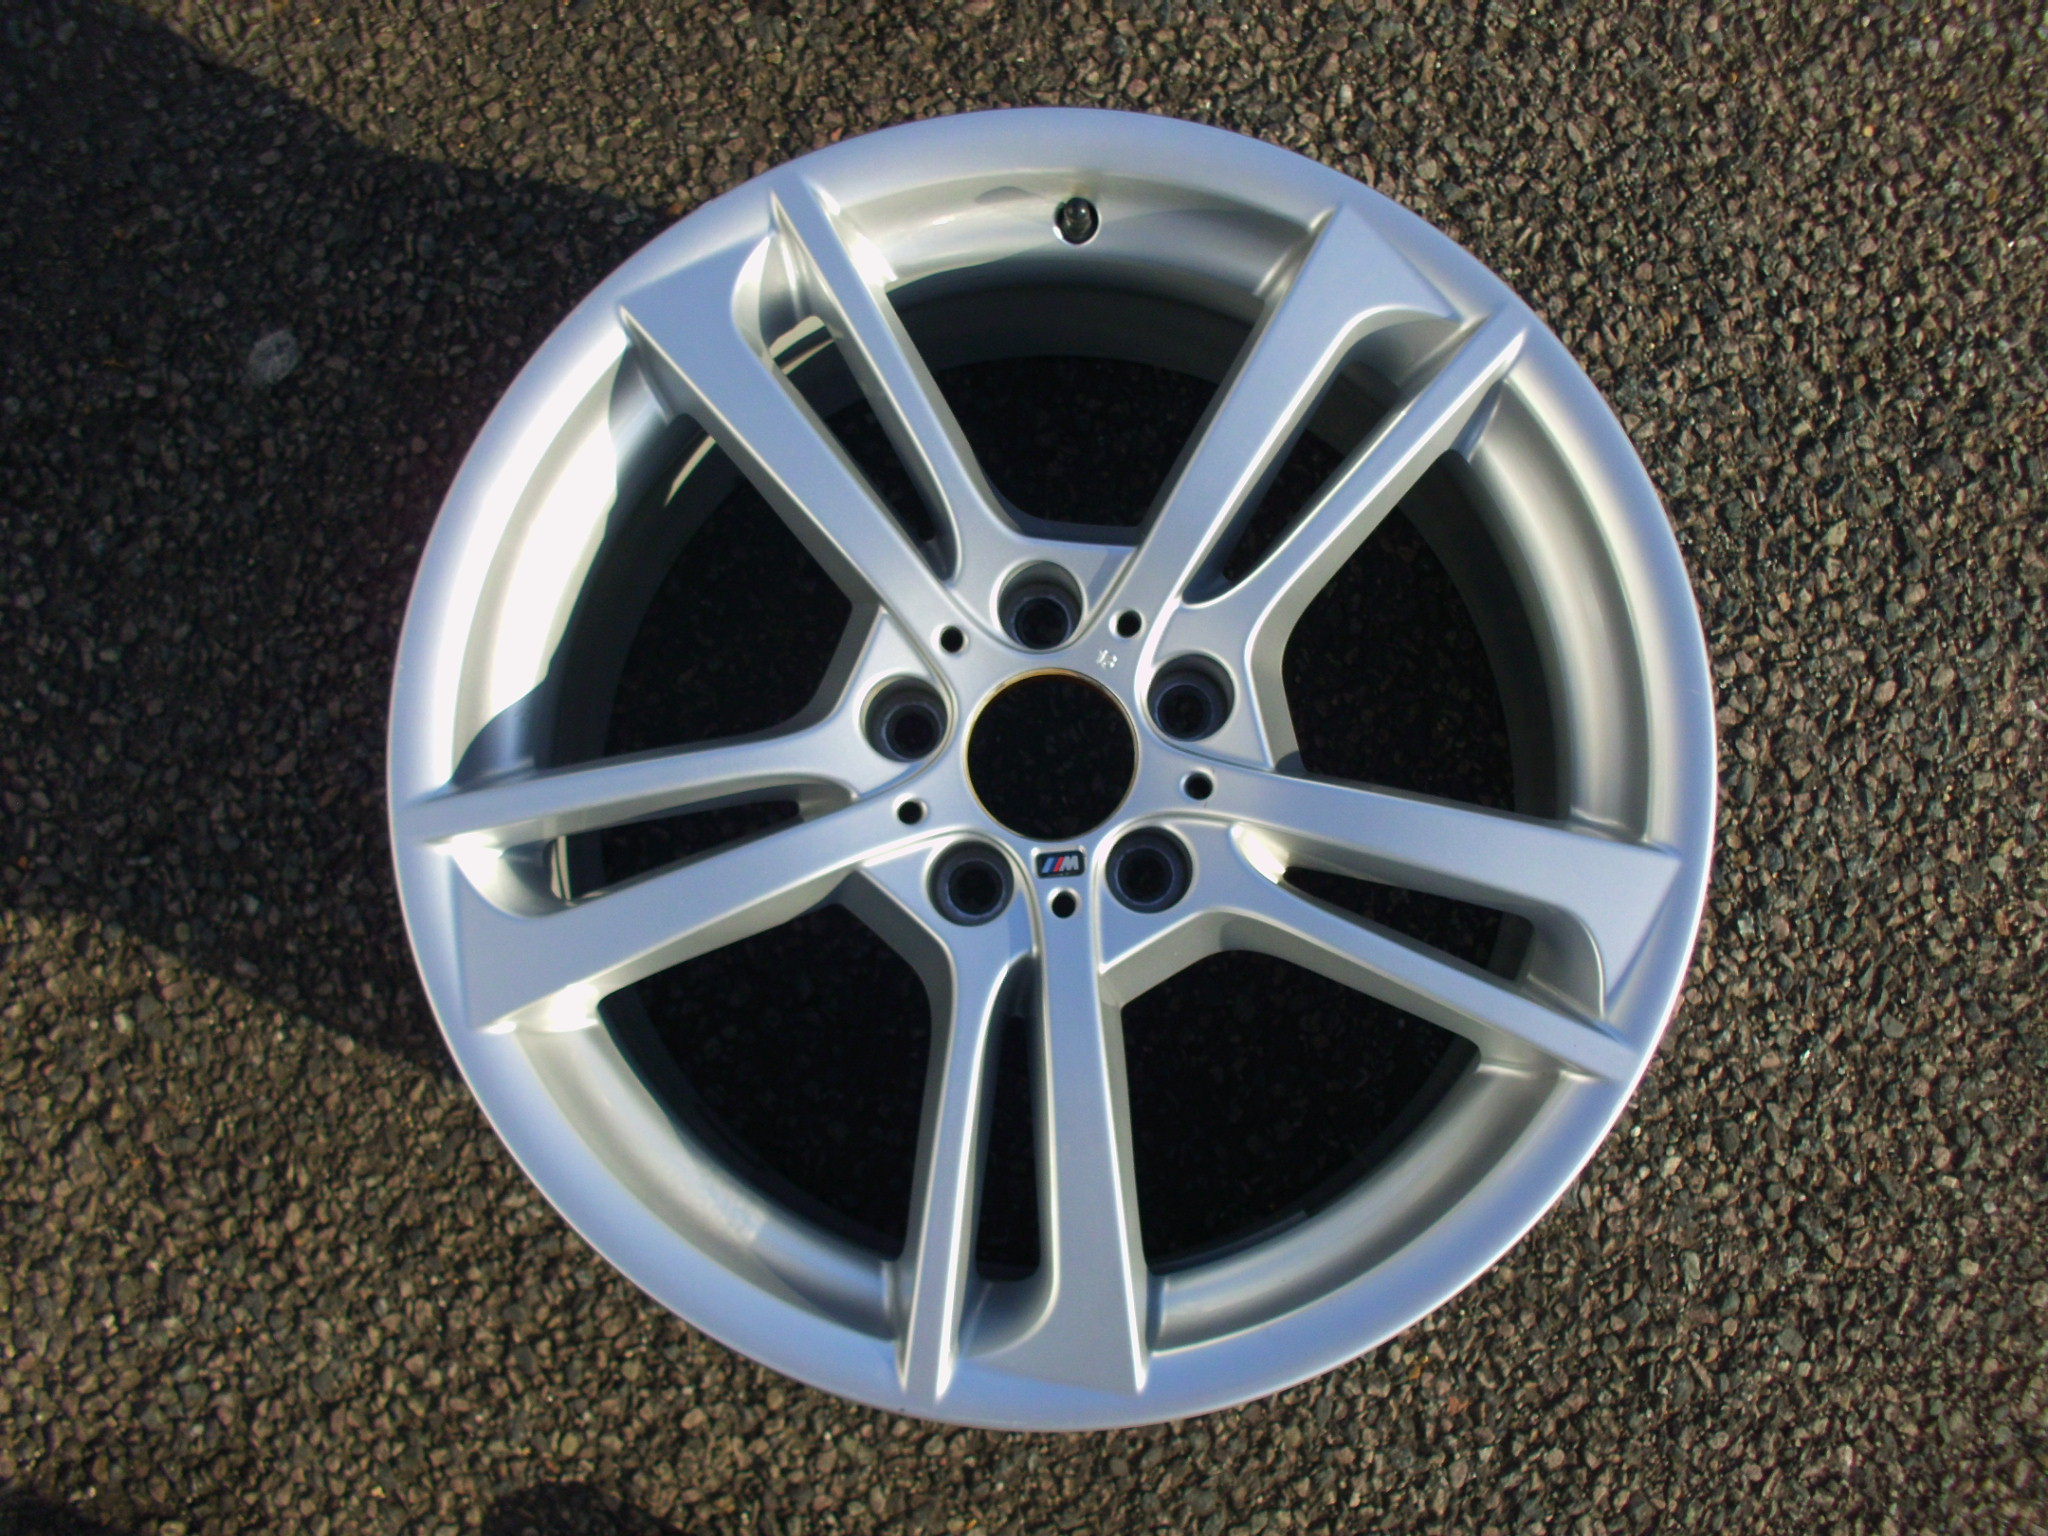 "USED SINGLE 19"" GENUINE BMW F25 X3 REAR STYLE 369M ALLOY WHEEL, EXCELLENT ORIGINAL CLEAN CONDITION"